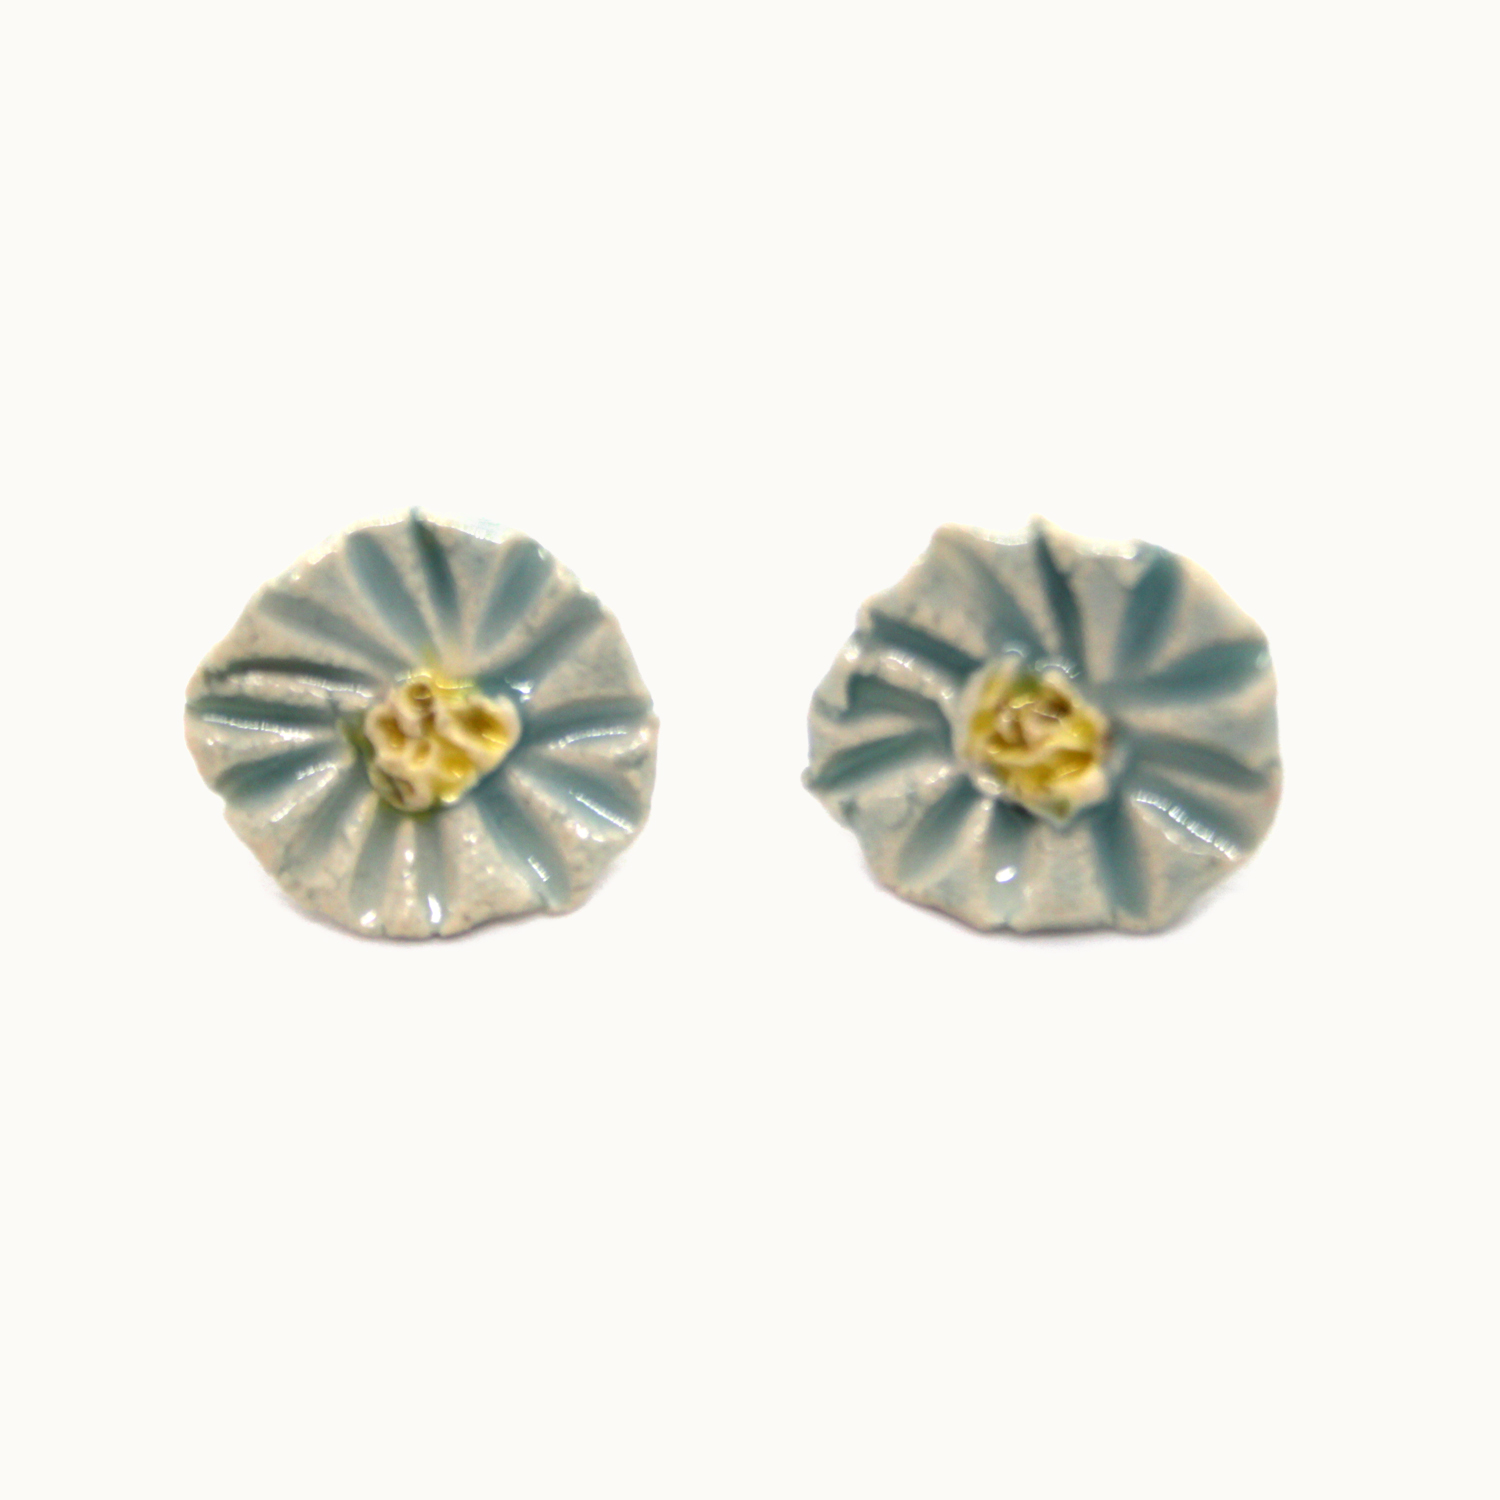 pendientes de plata y cerámica Bowtery Margarita azul hechos a mano. Handmade ceramic and silver earrings blue daisy